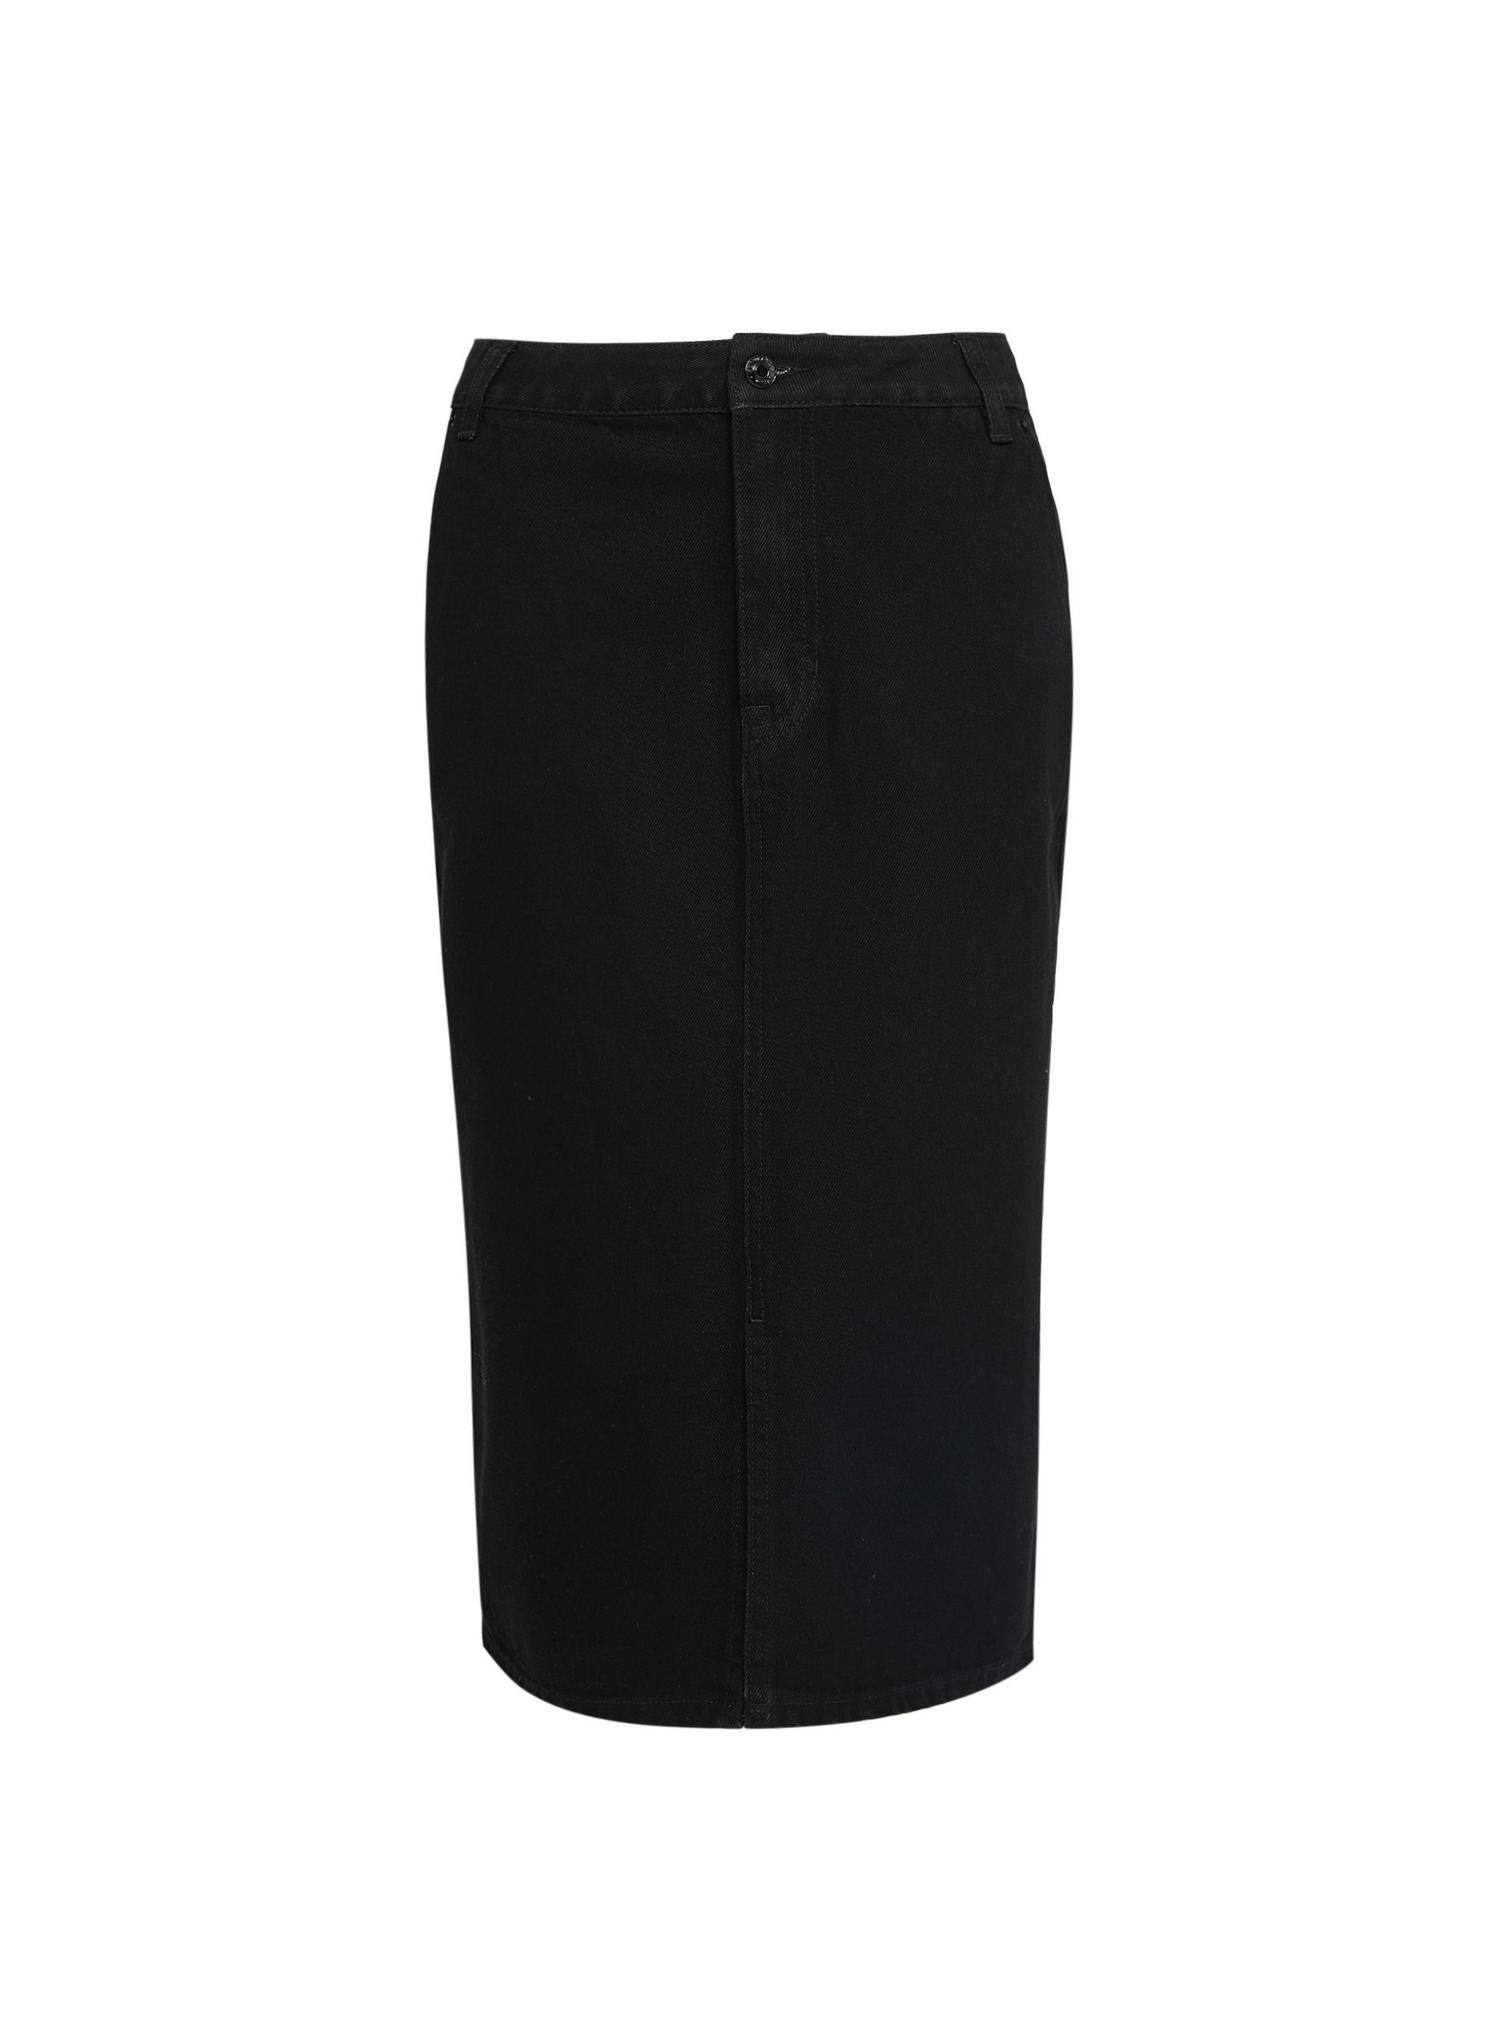 105 Tall Black Denim Midi Skirt  image number 4